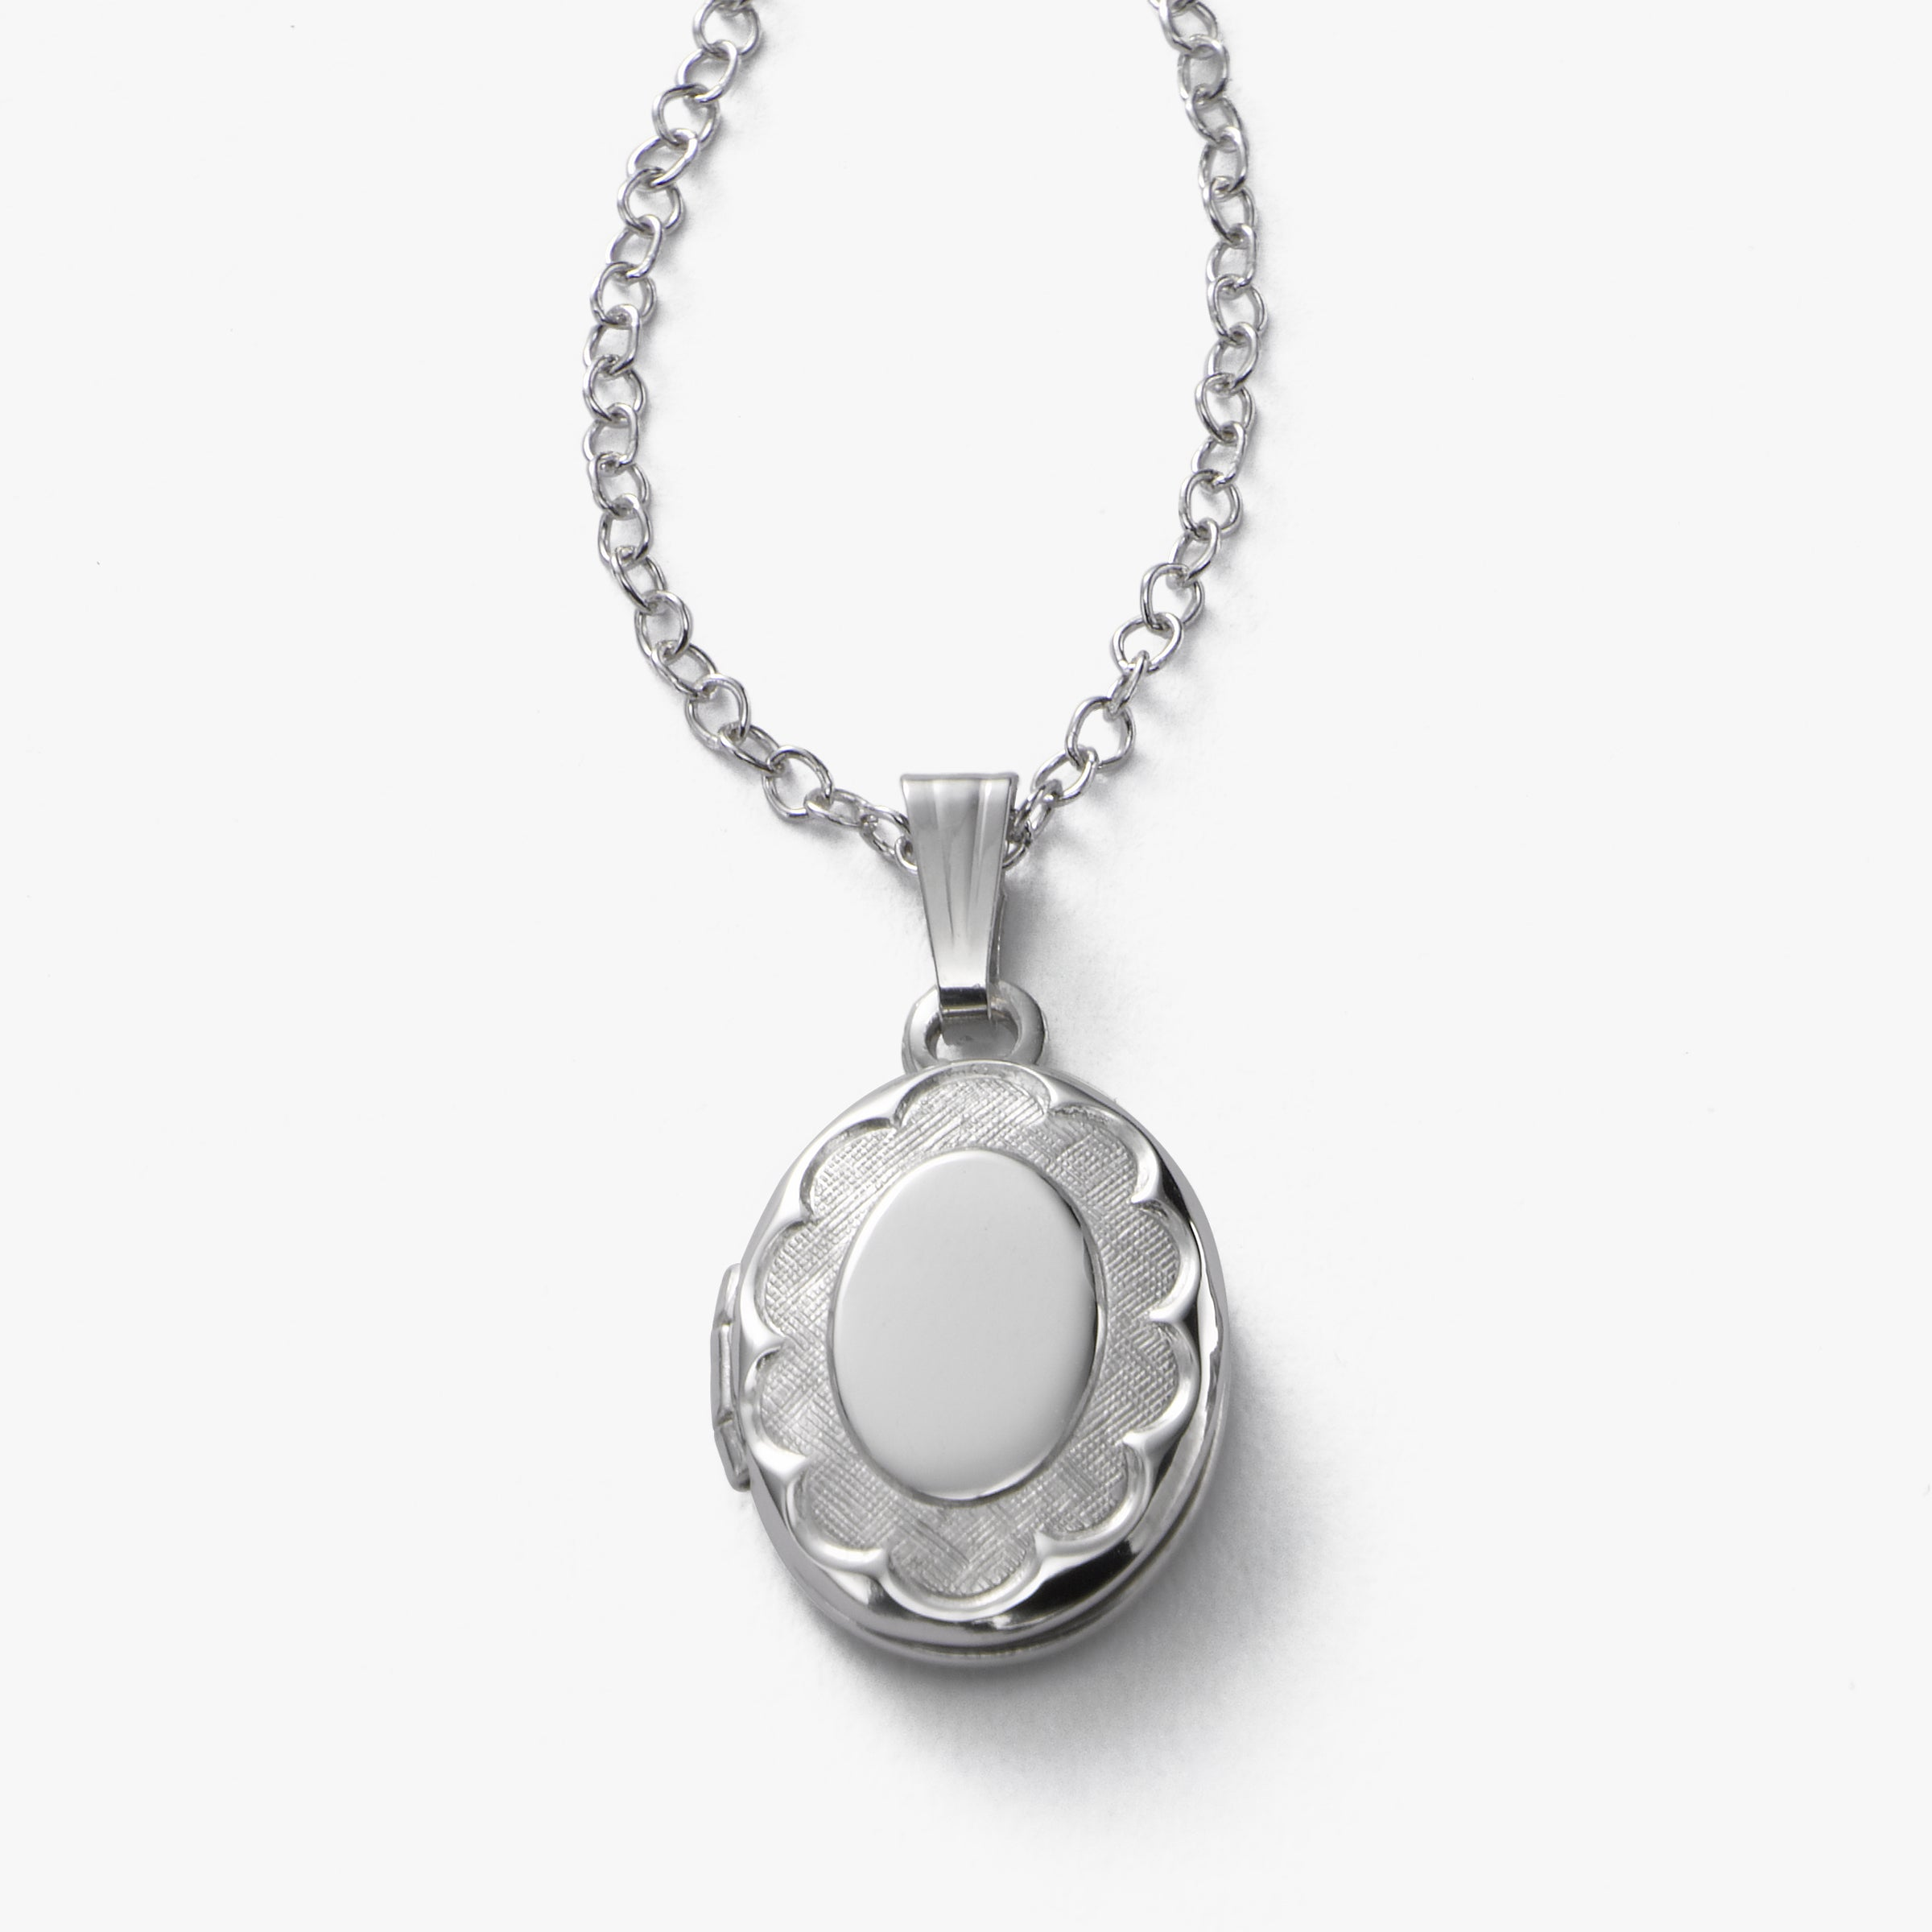 Small Oval Child's Locket, 15 Inch Chain, Sterling Silver